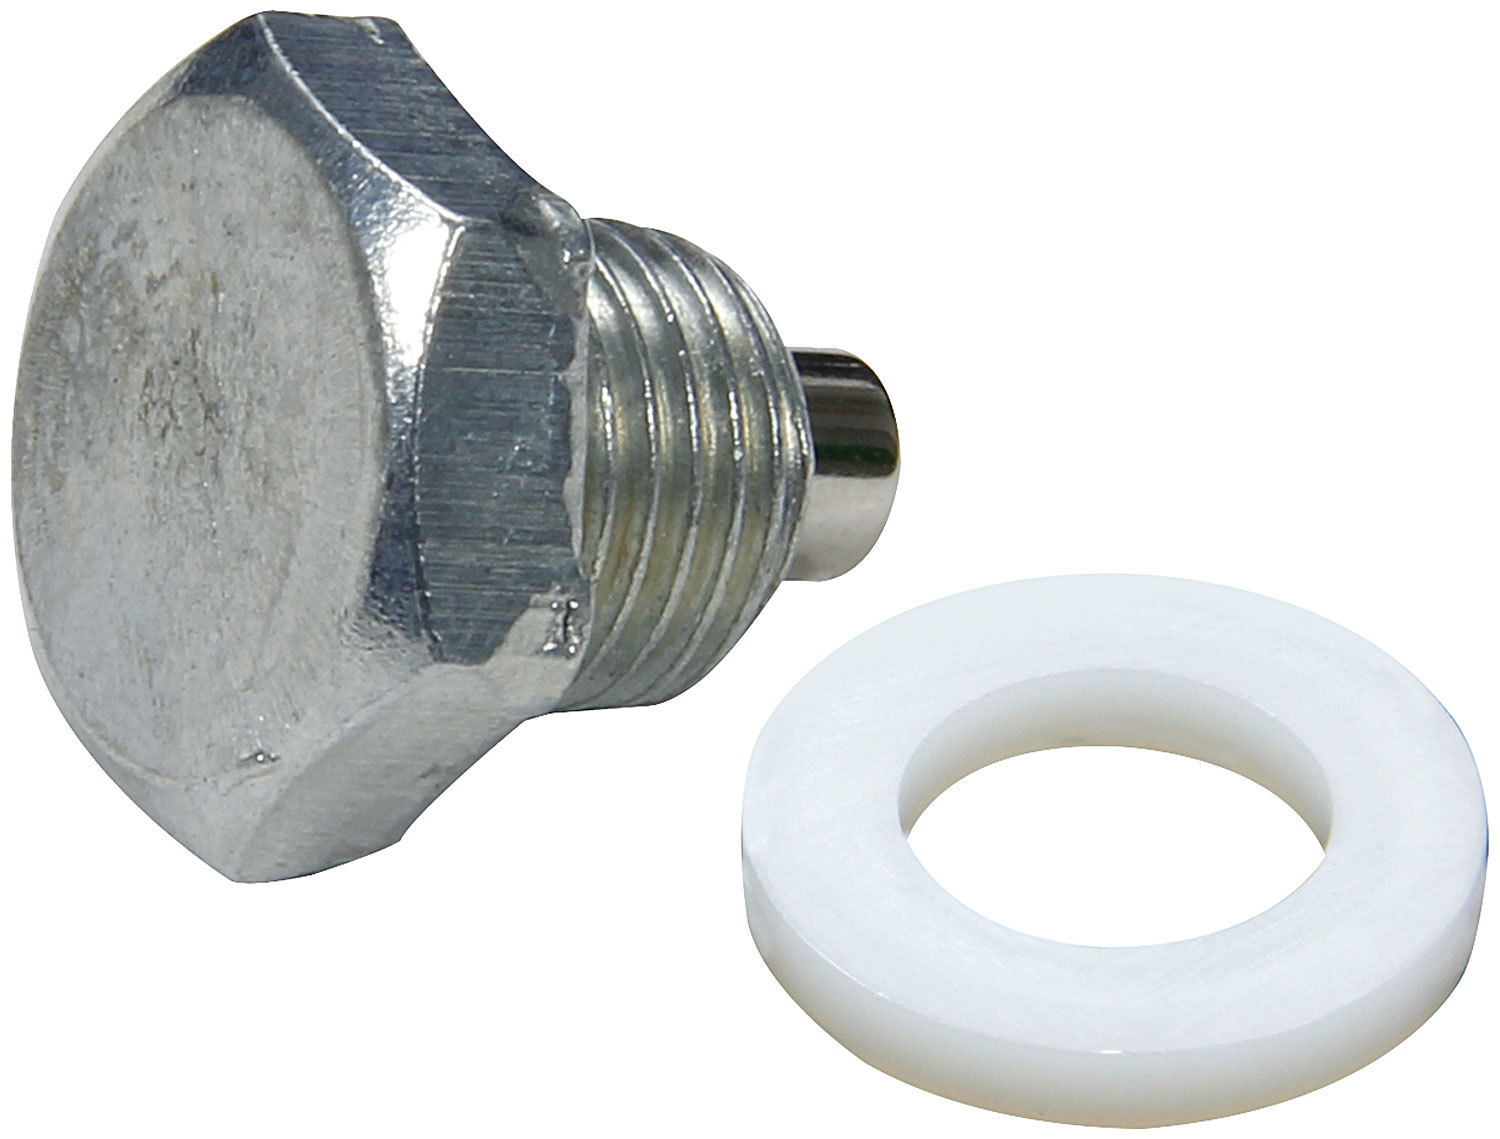 Allstar Performance 87040 Drain Plug, 1/2-20 in Thread, 3/4 in Hex Head, Nylon Washer, Magnetic, Steel, Zinc Oxide, Each